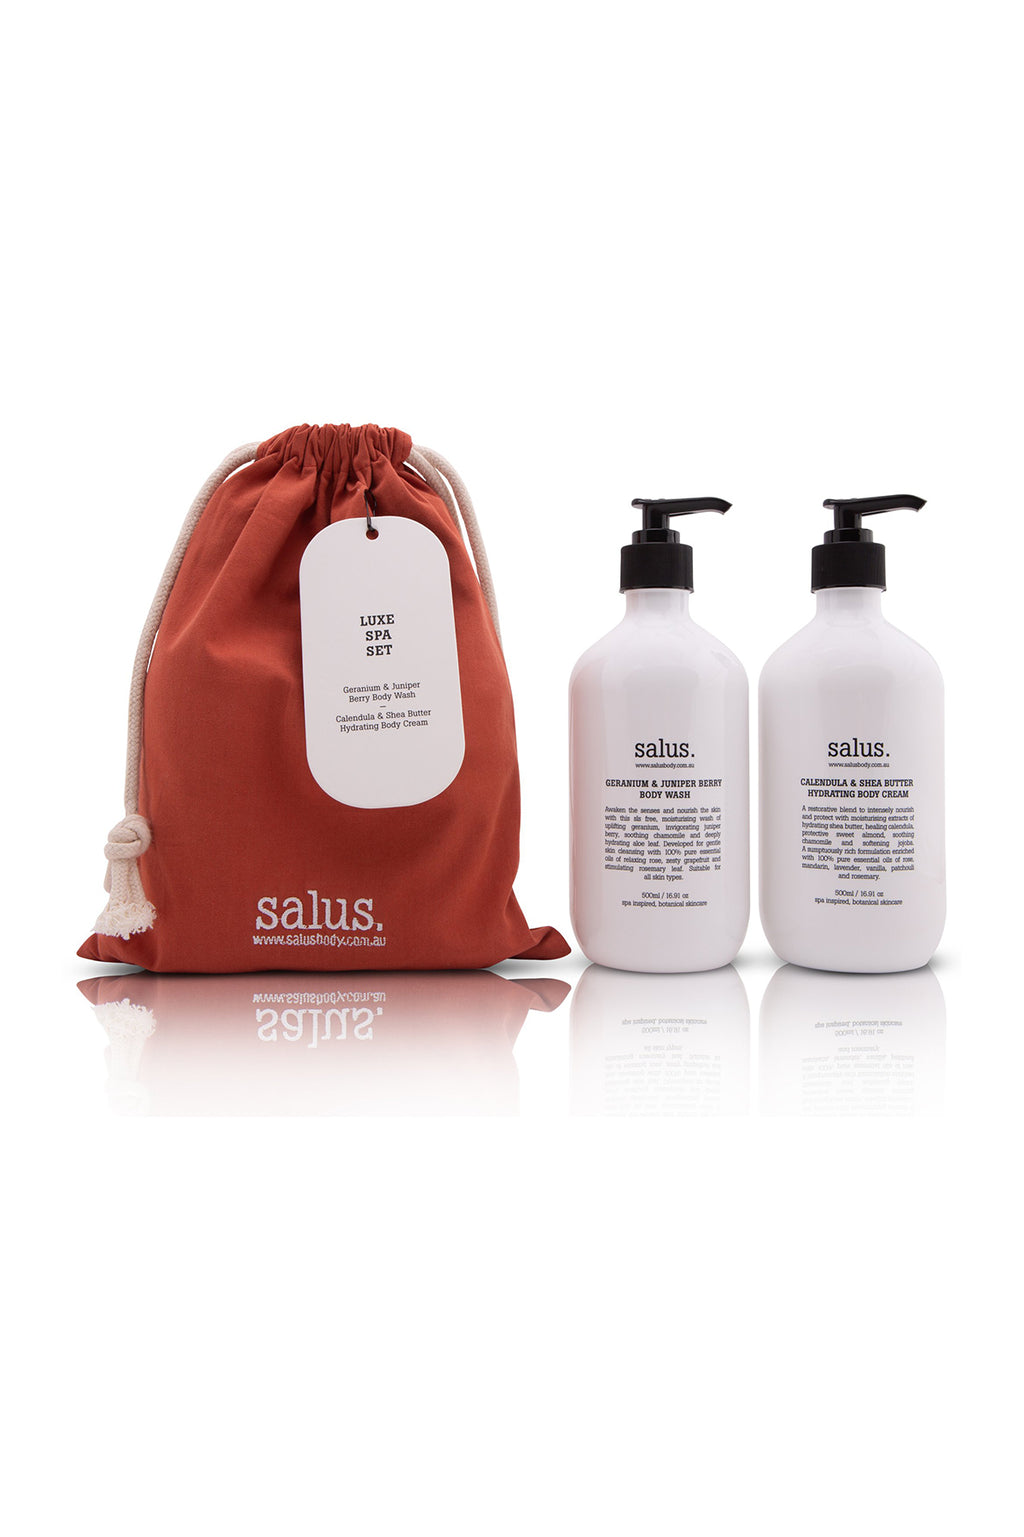 SALUS - LUXE SPA GIFT SET - Tempted Kensington